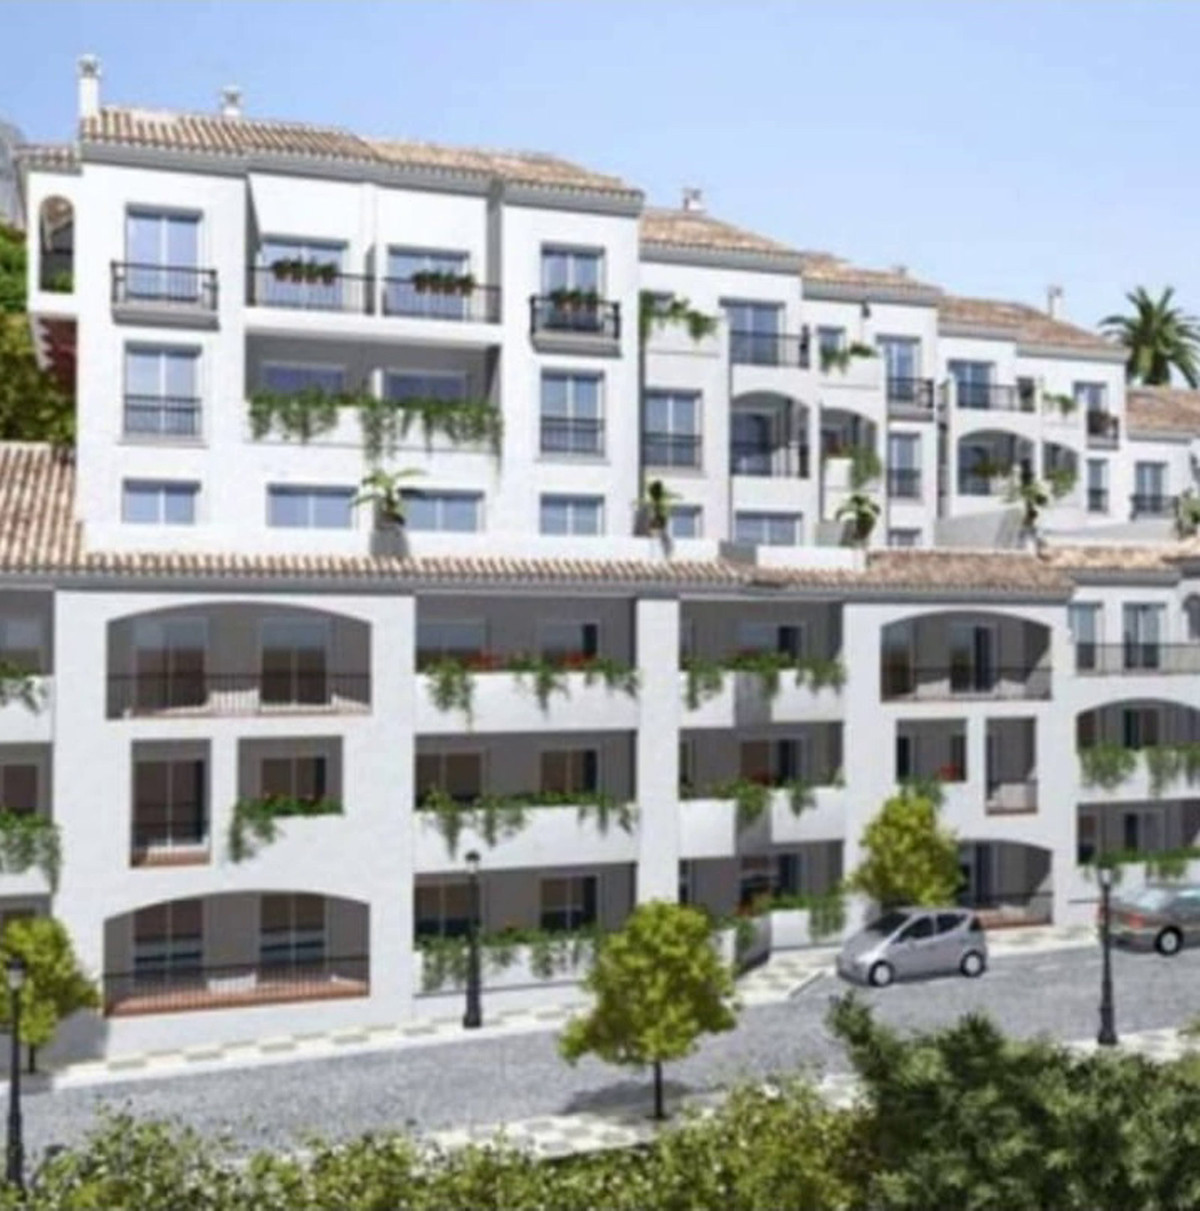 Apartment in Ojen, only 15 minutes drive to Marbella with all its shops and restaurants and beaches.,Spain